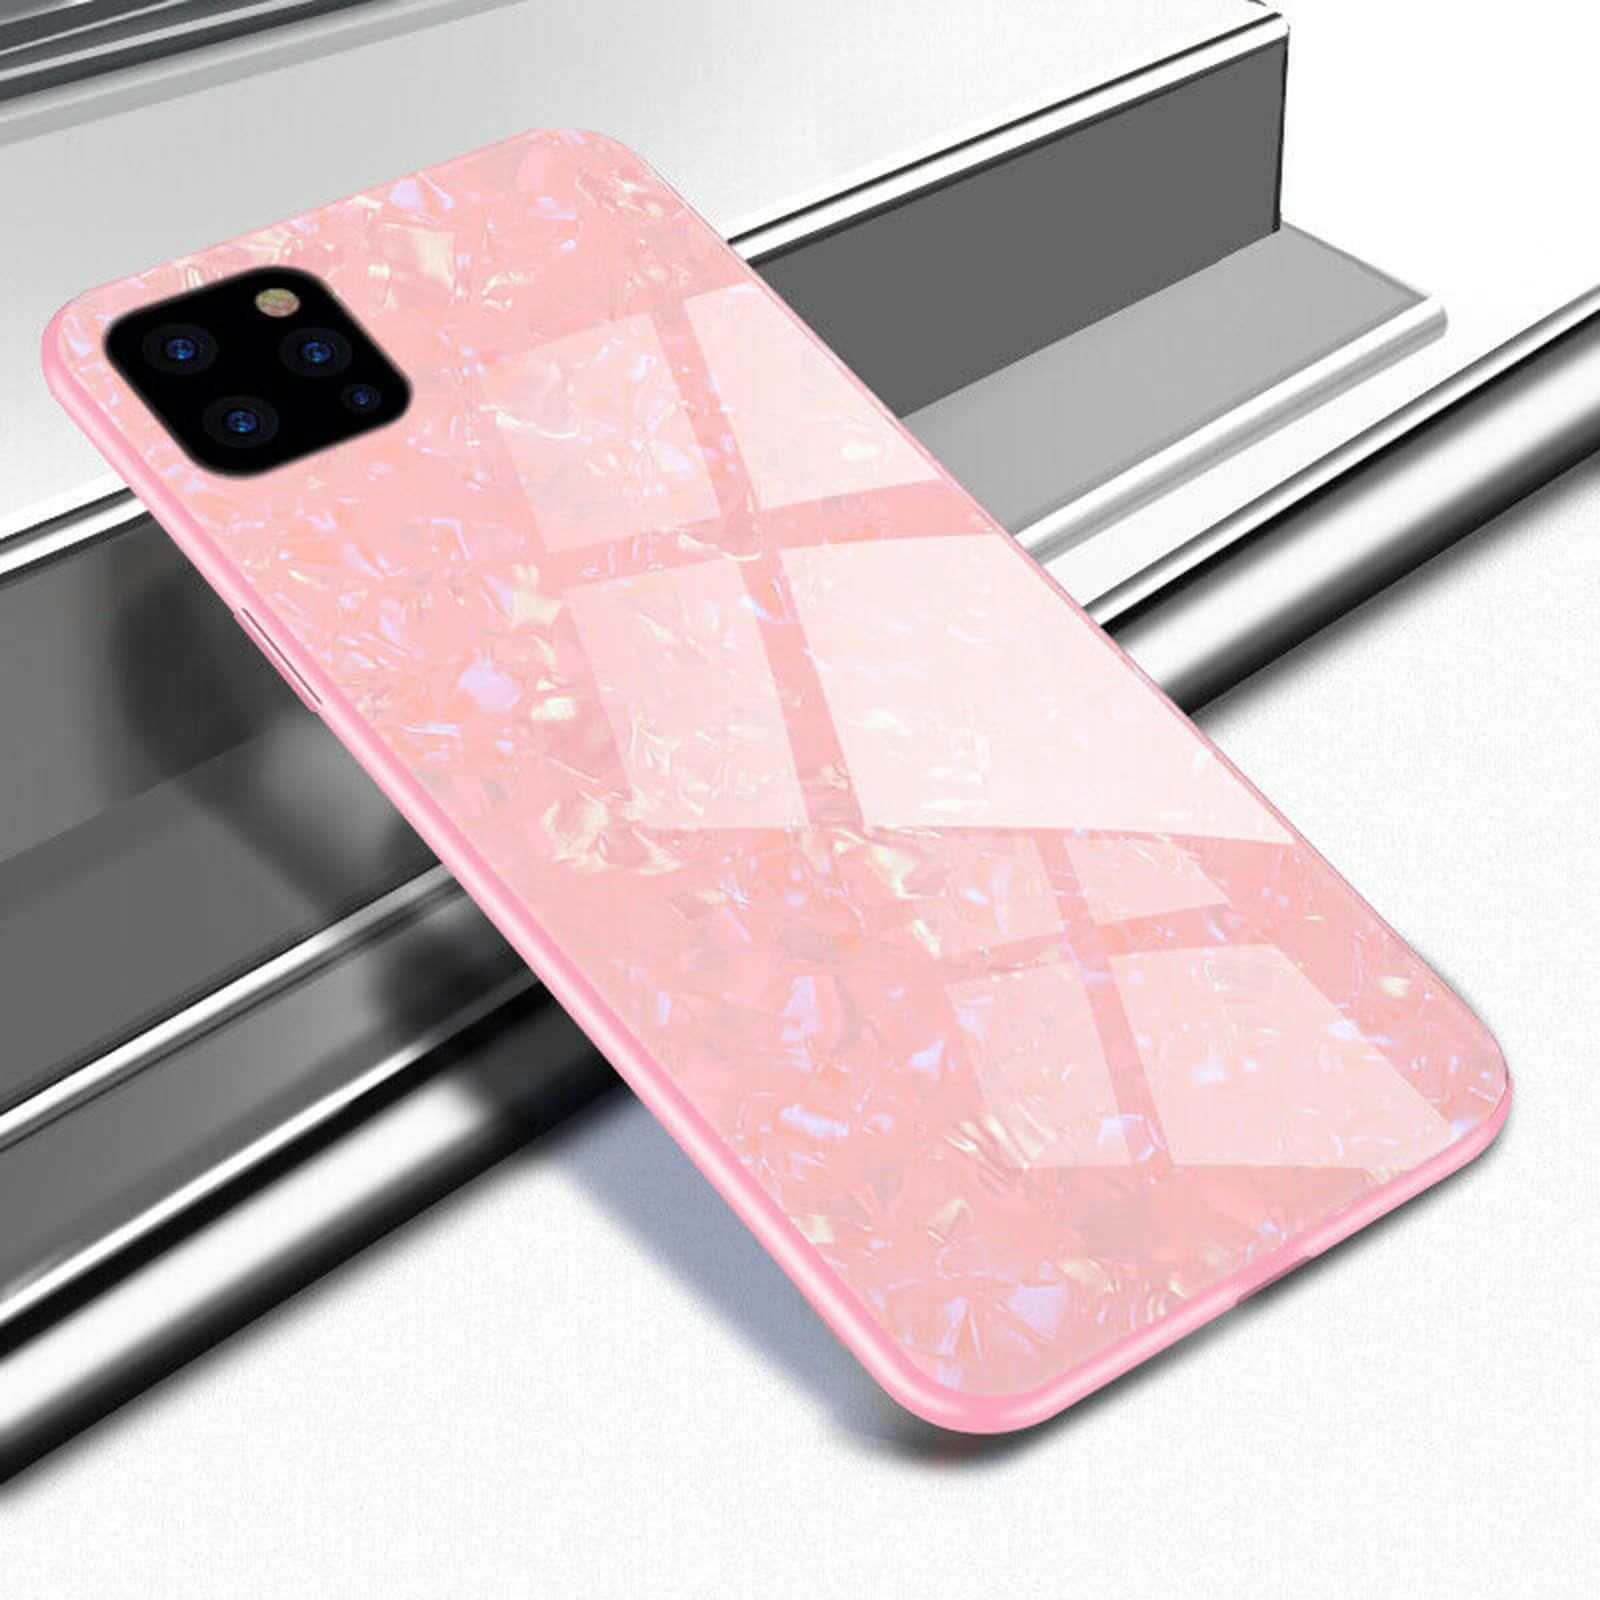 Luxury-Marble-Tempered-Glass-Case-Cover-For-Apple-iPhone-X-XS-XR-Max-10-8-7-6s-6 thumbnail 29